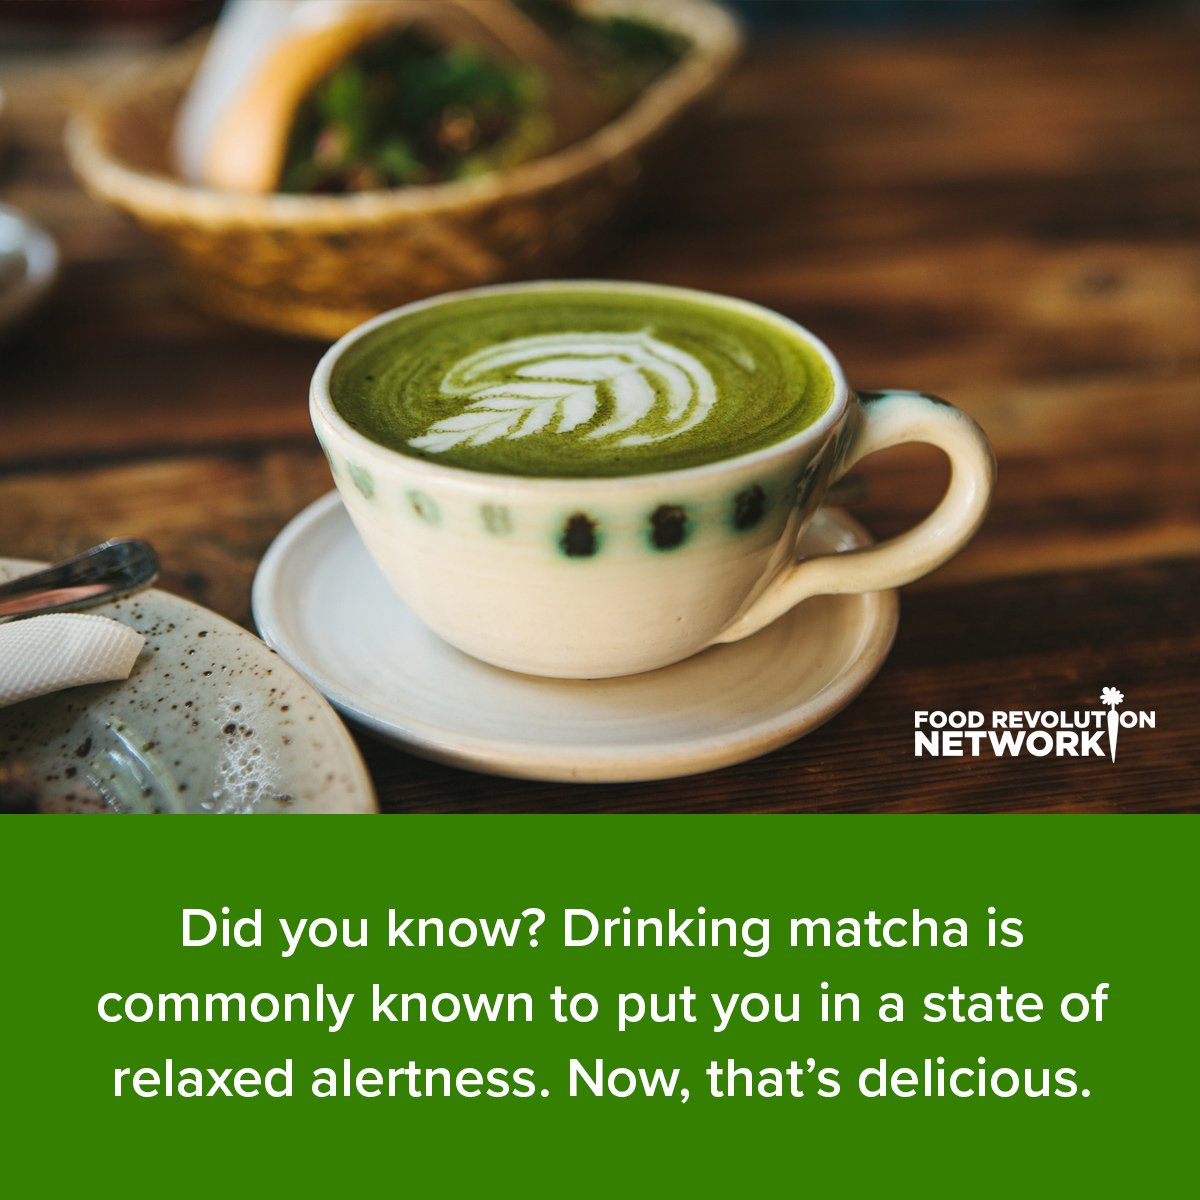 Did you know? Drinking matcha is commonly known to put you in a state of relaxed alertness. Now, that's delicious.